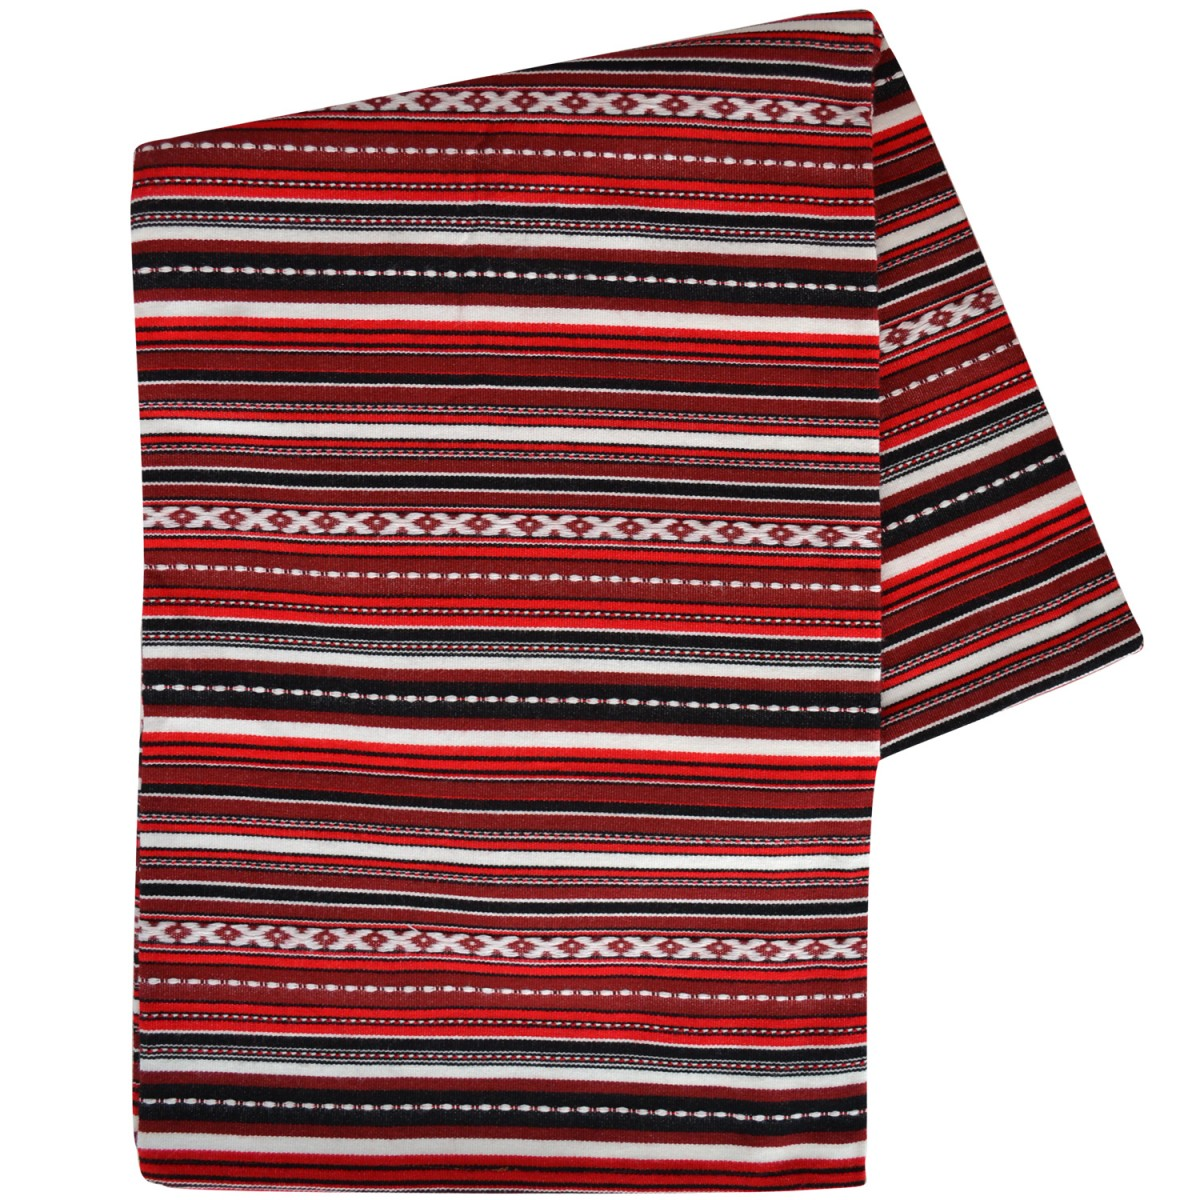 Couch striped blanket, aubergine